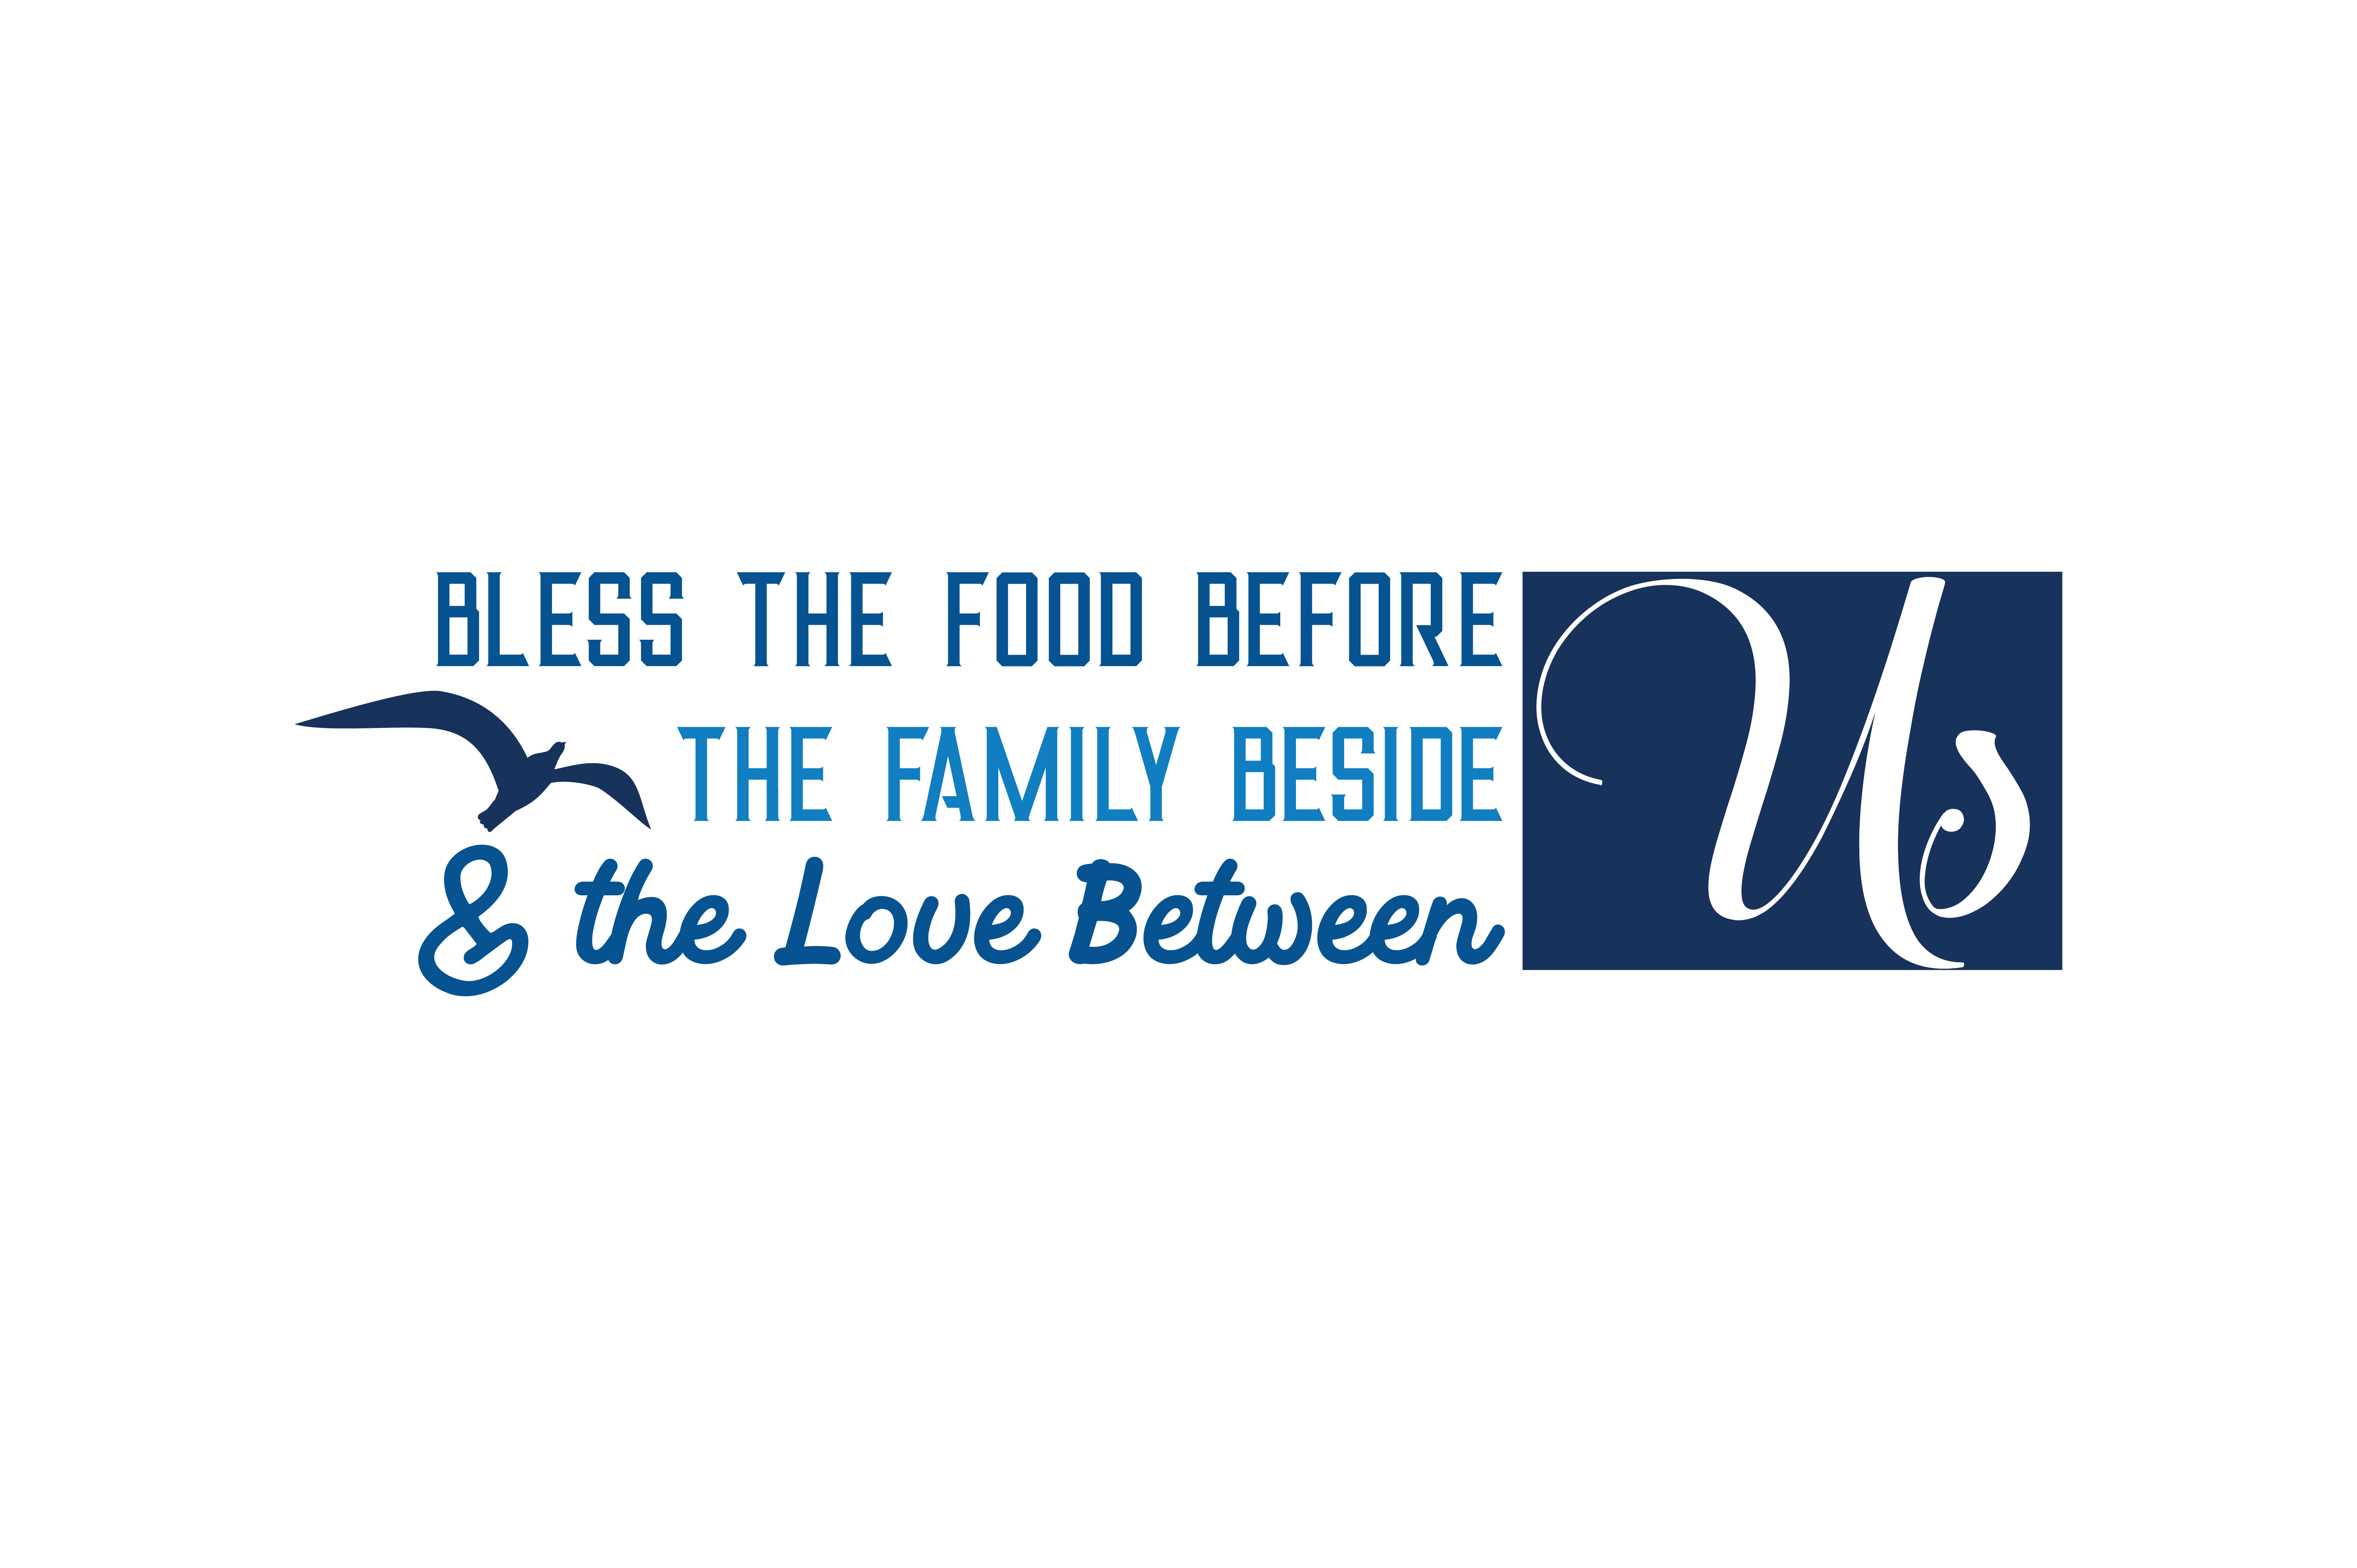 Bless The Food Before Us The Family Beside Us The Love Between Us Quote Svg Cut Graphic By Thelucky Creative Fabrica